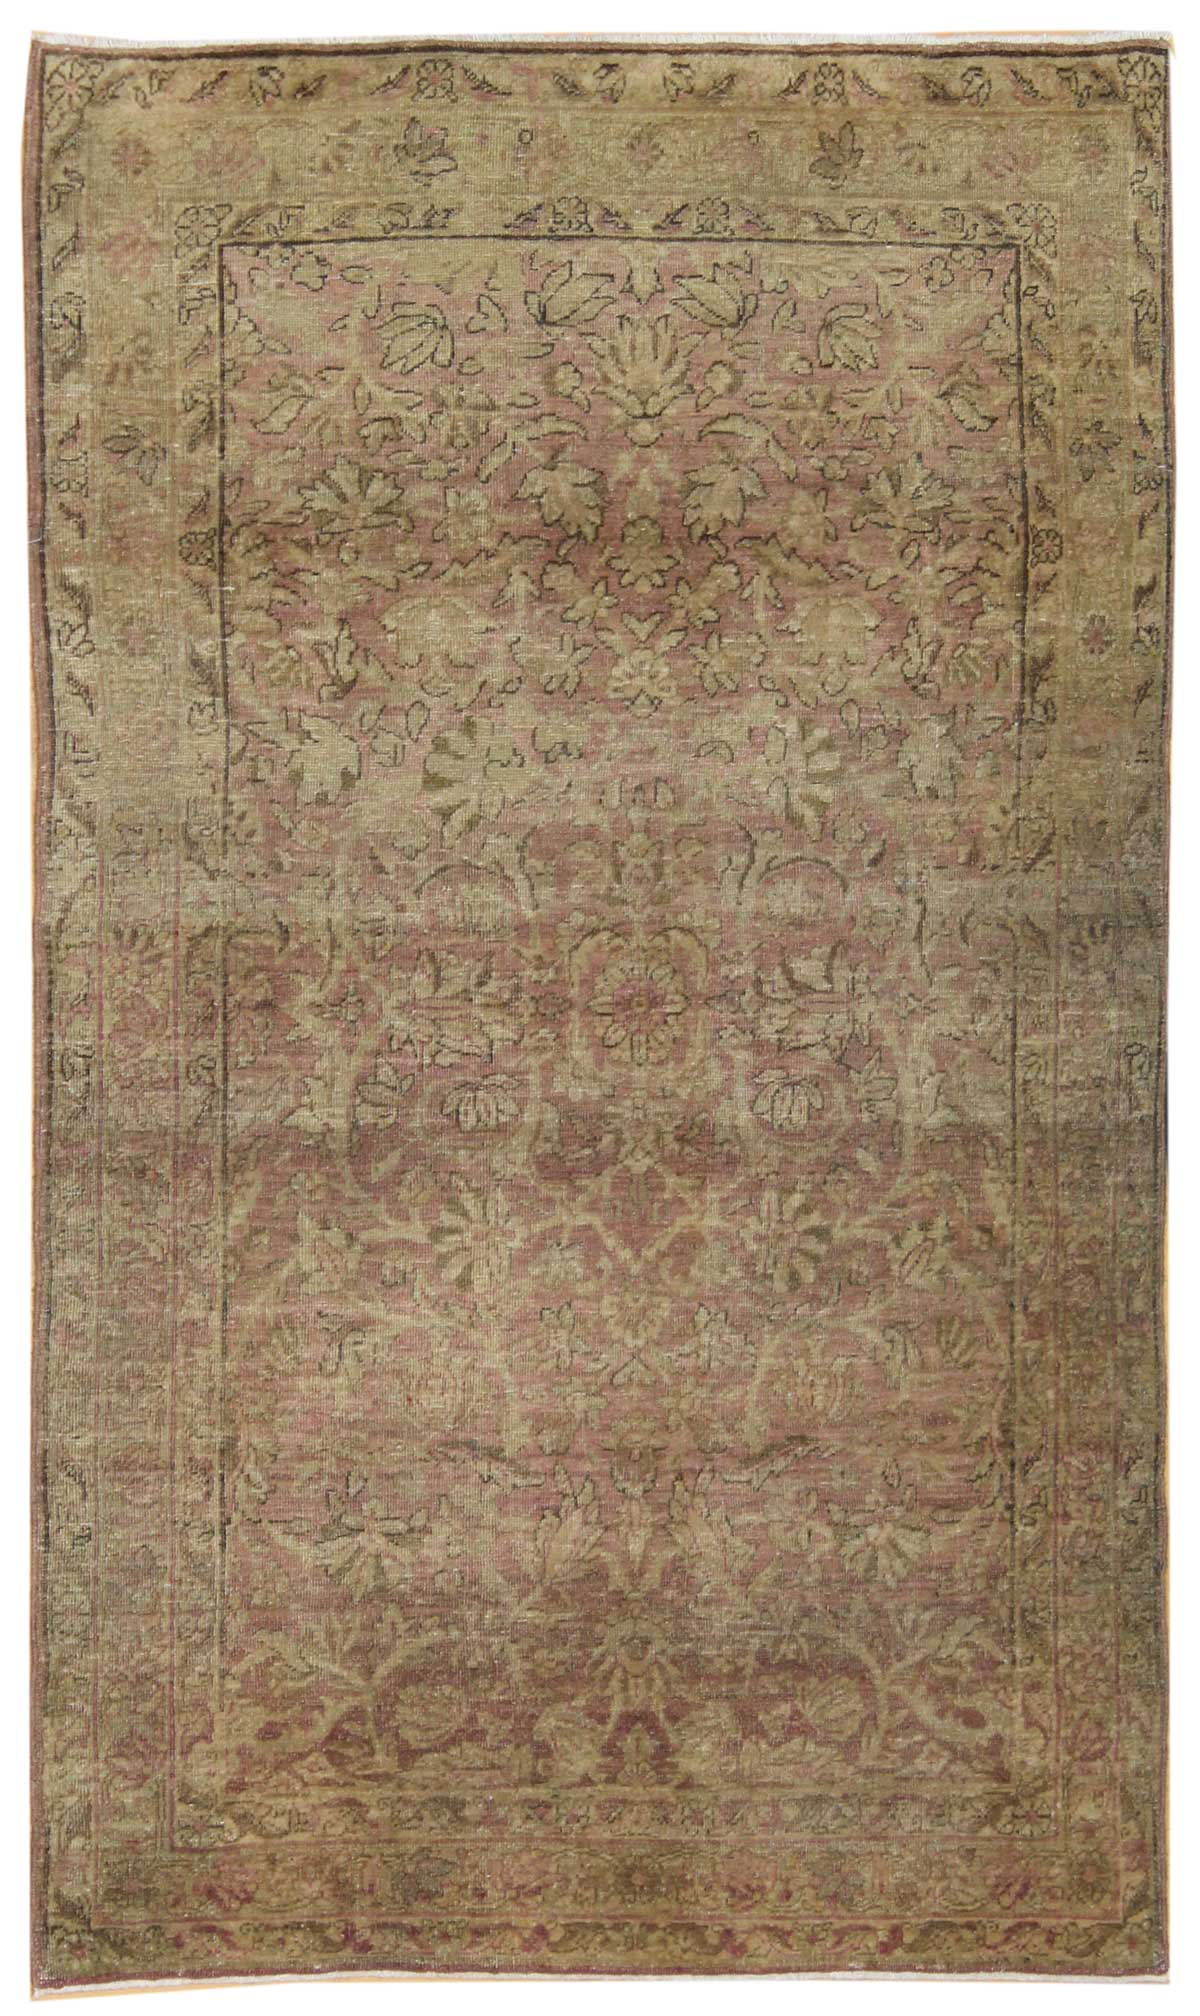 Antique Lavar Kerman Handwoven Traditional Rug